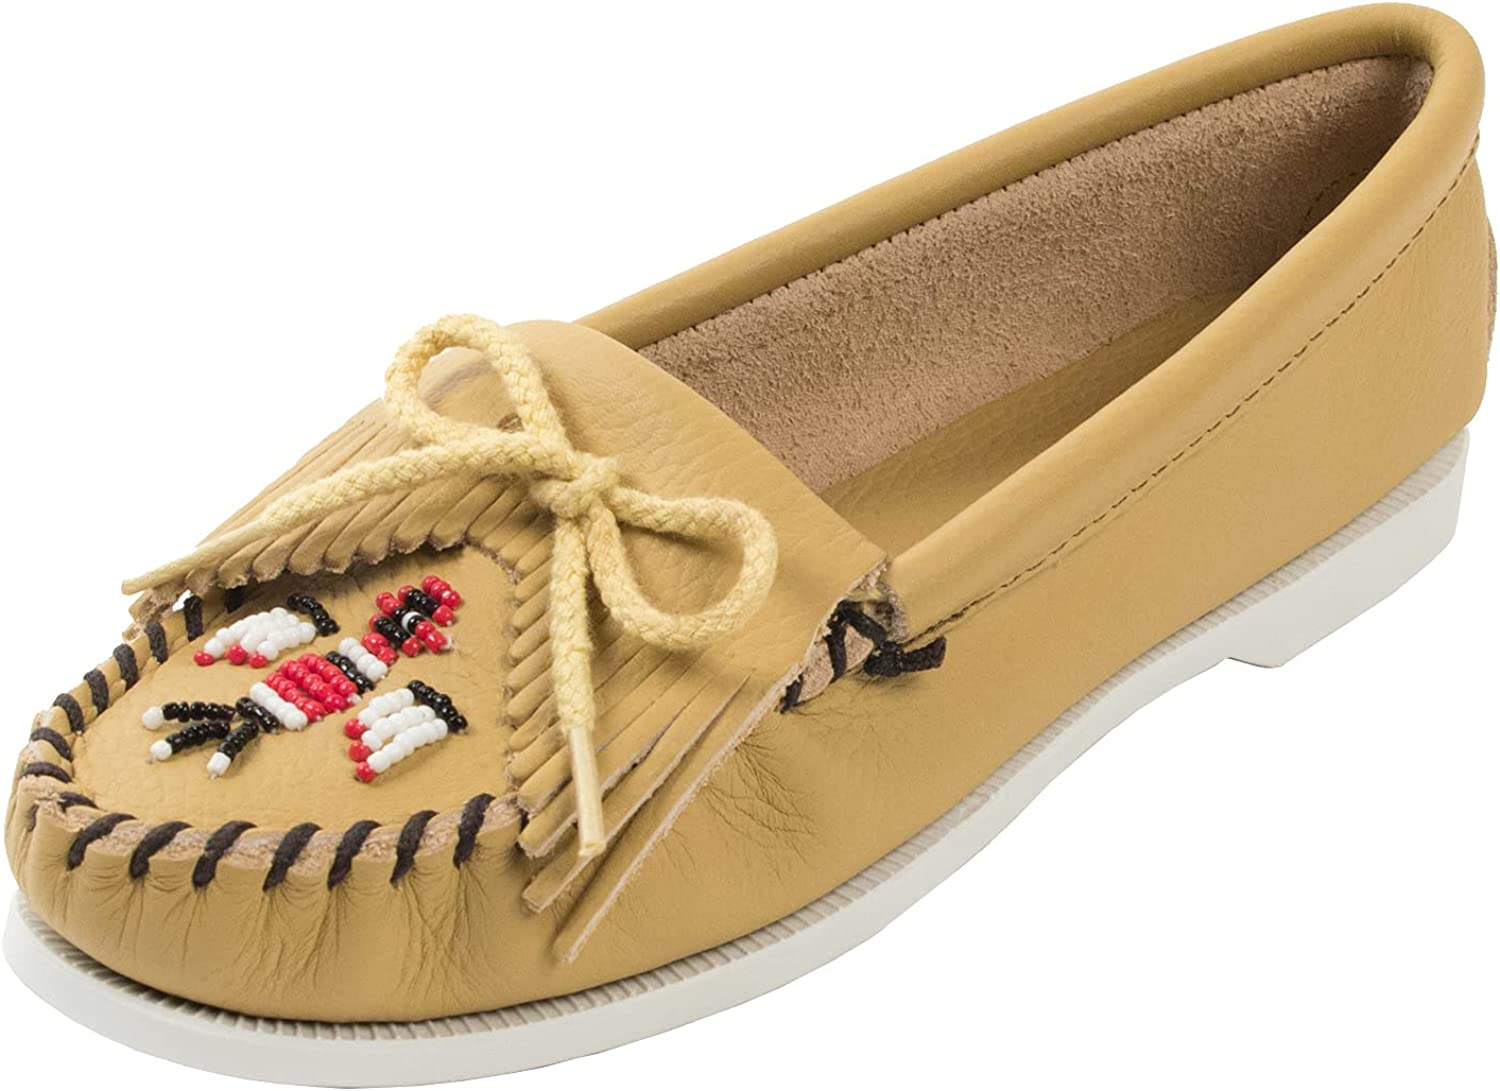 Limited time trial price Minnetonka Women's Thunderbird In stock Moccasin